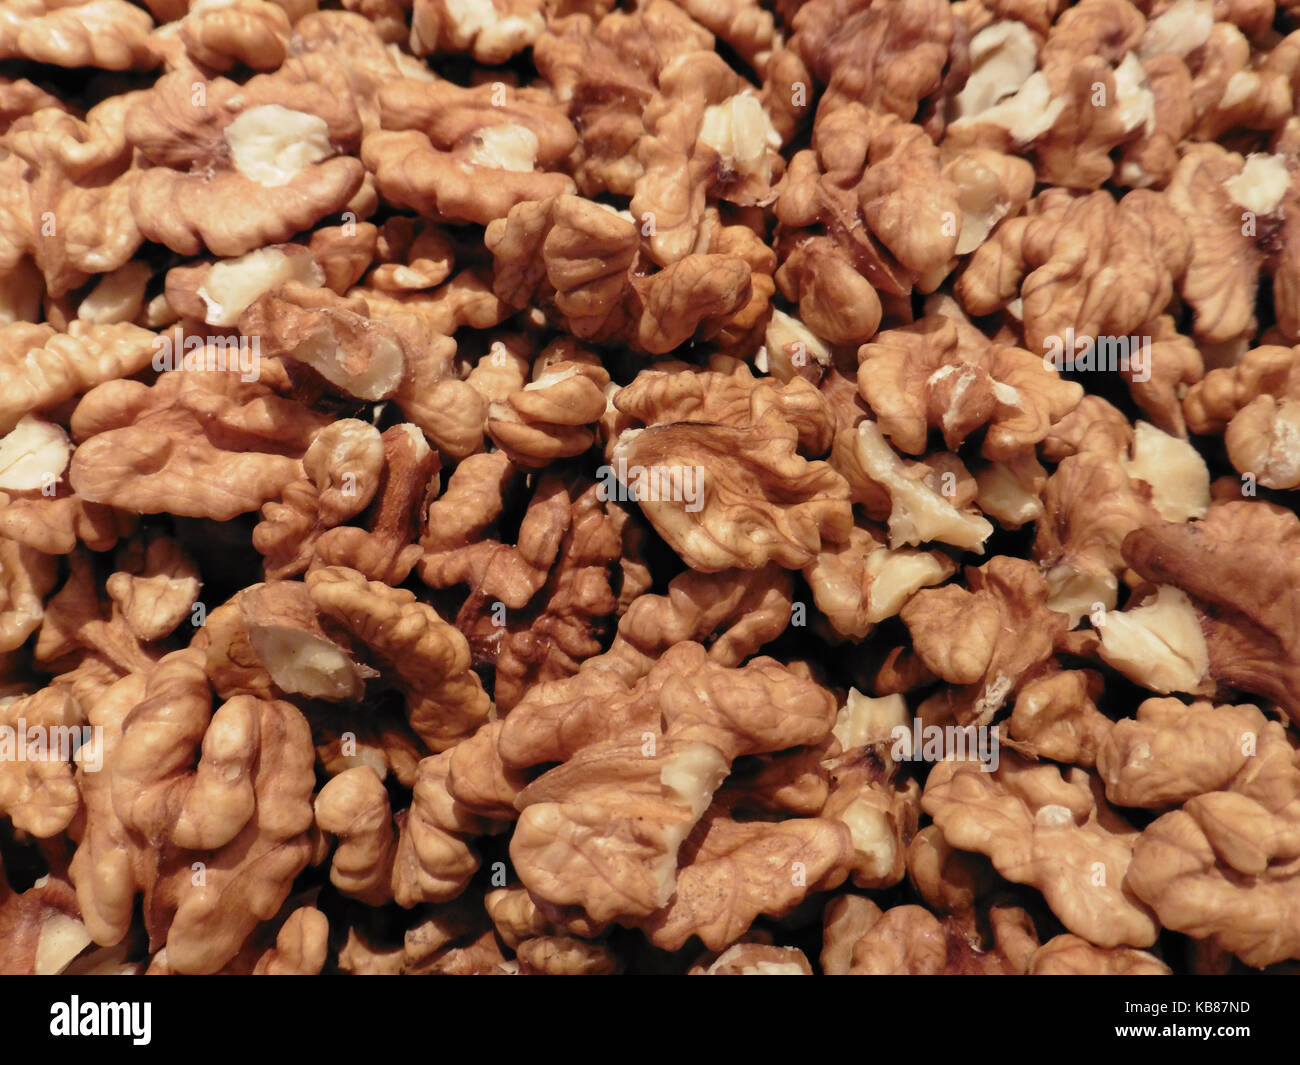 Background of a heap of freshly cracked walnut cores Stock Photo